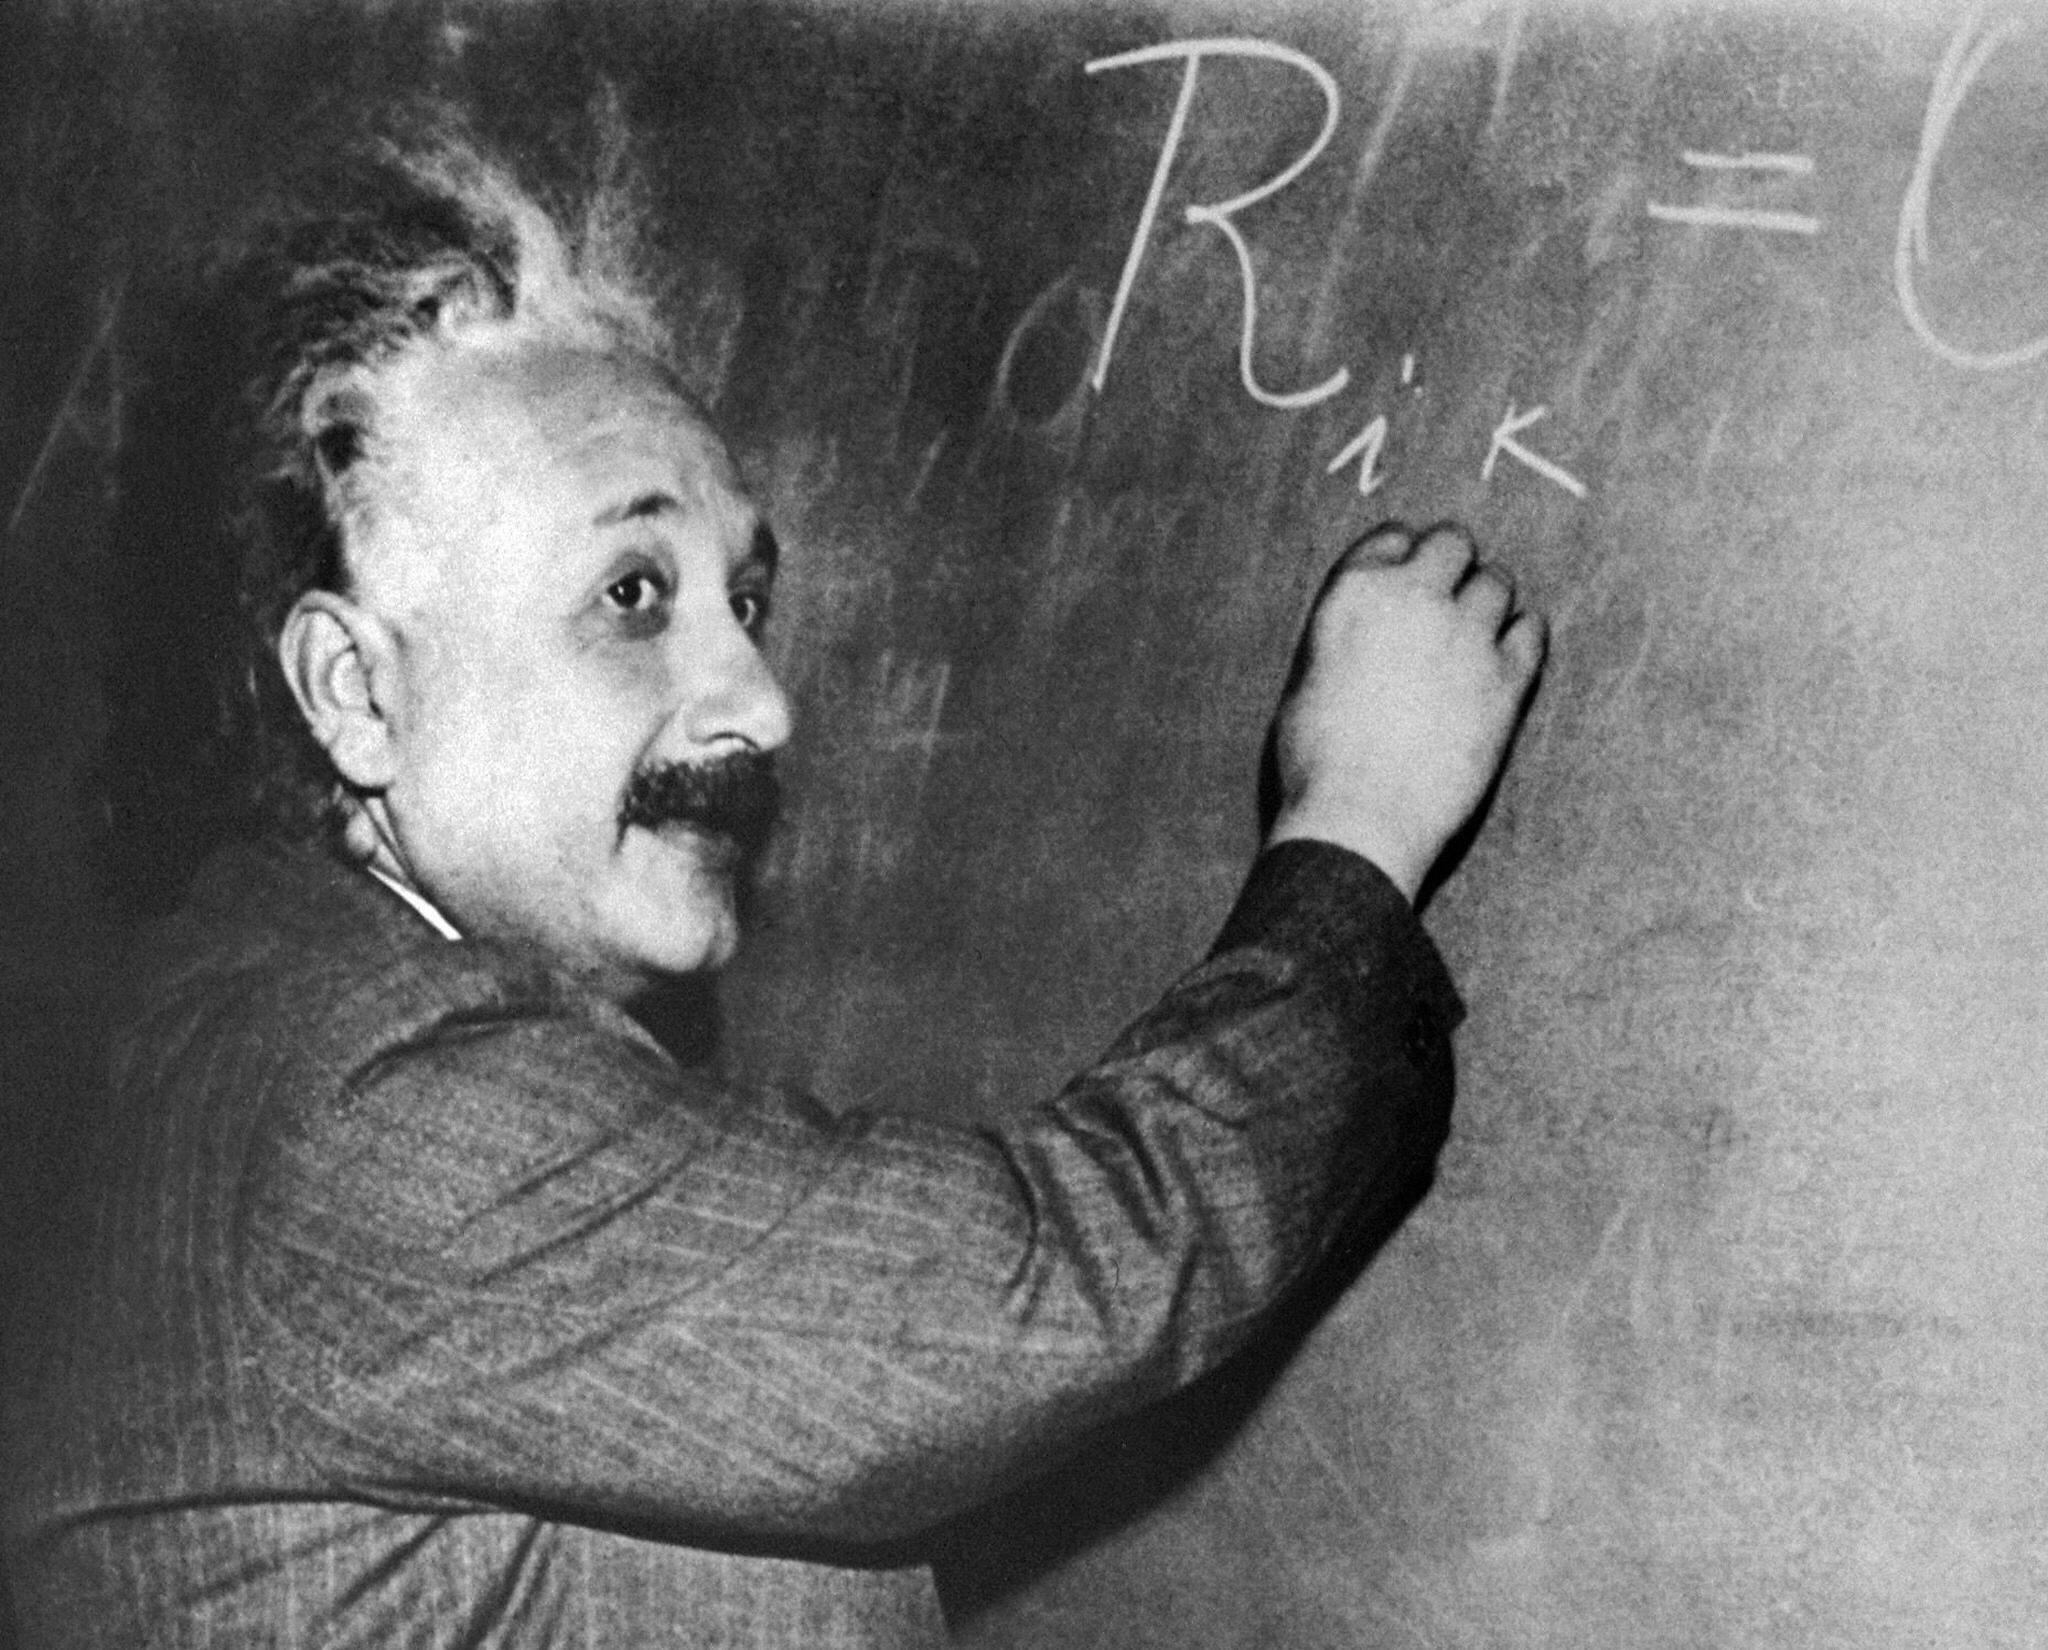 Did Einstein really fail math? | HowStuffWorks